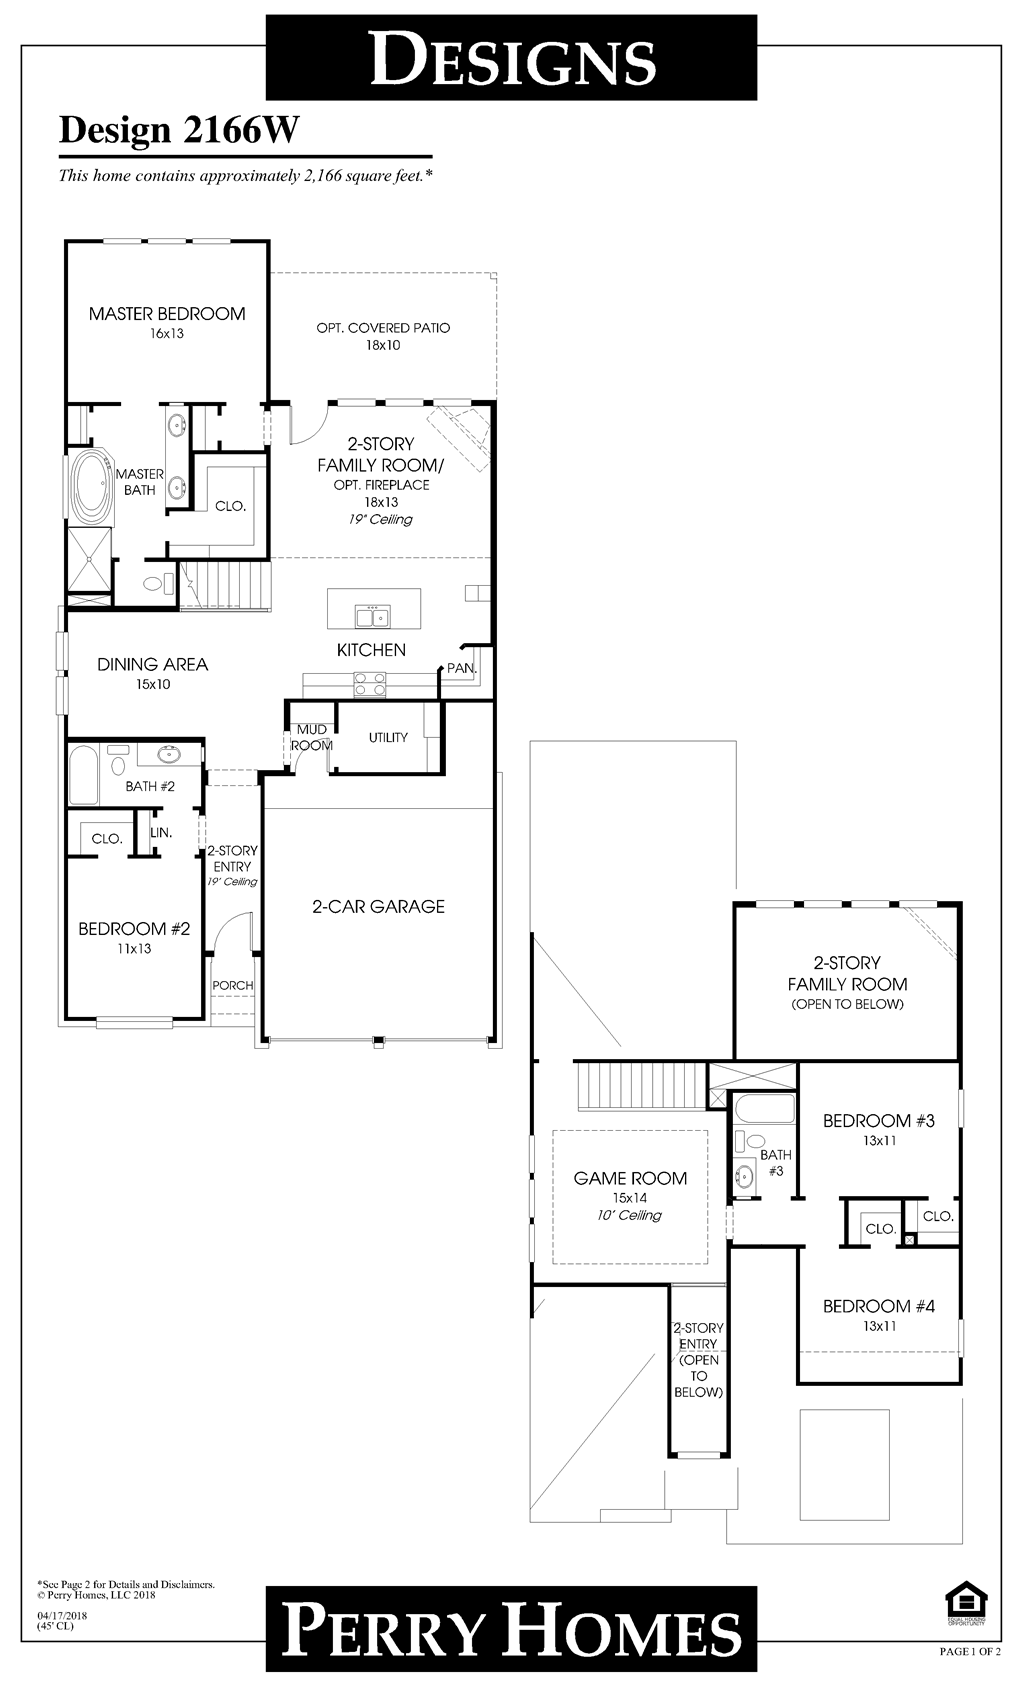 Floor Plan for 2166W